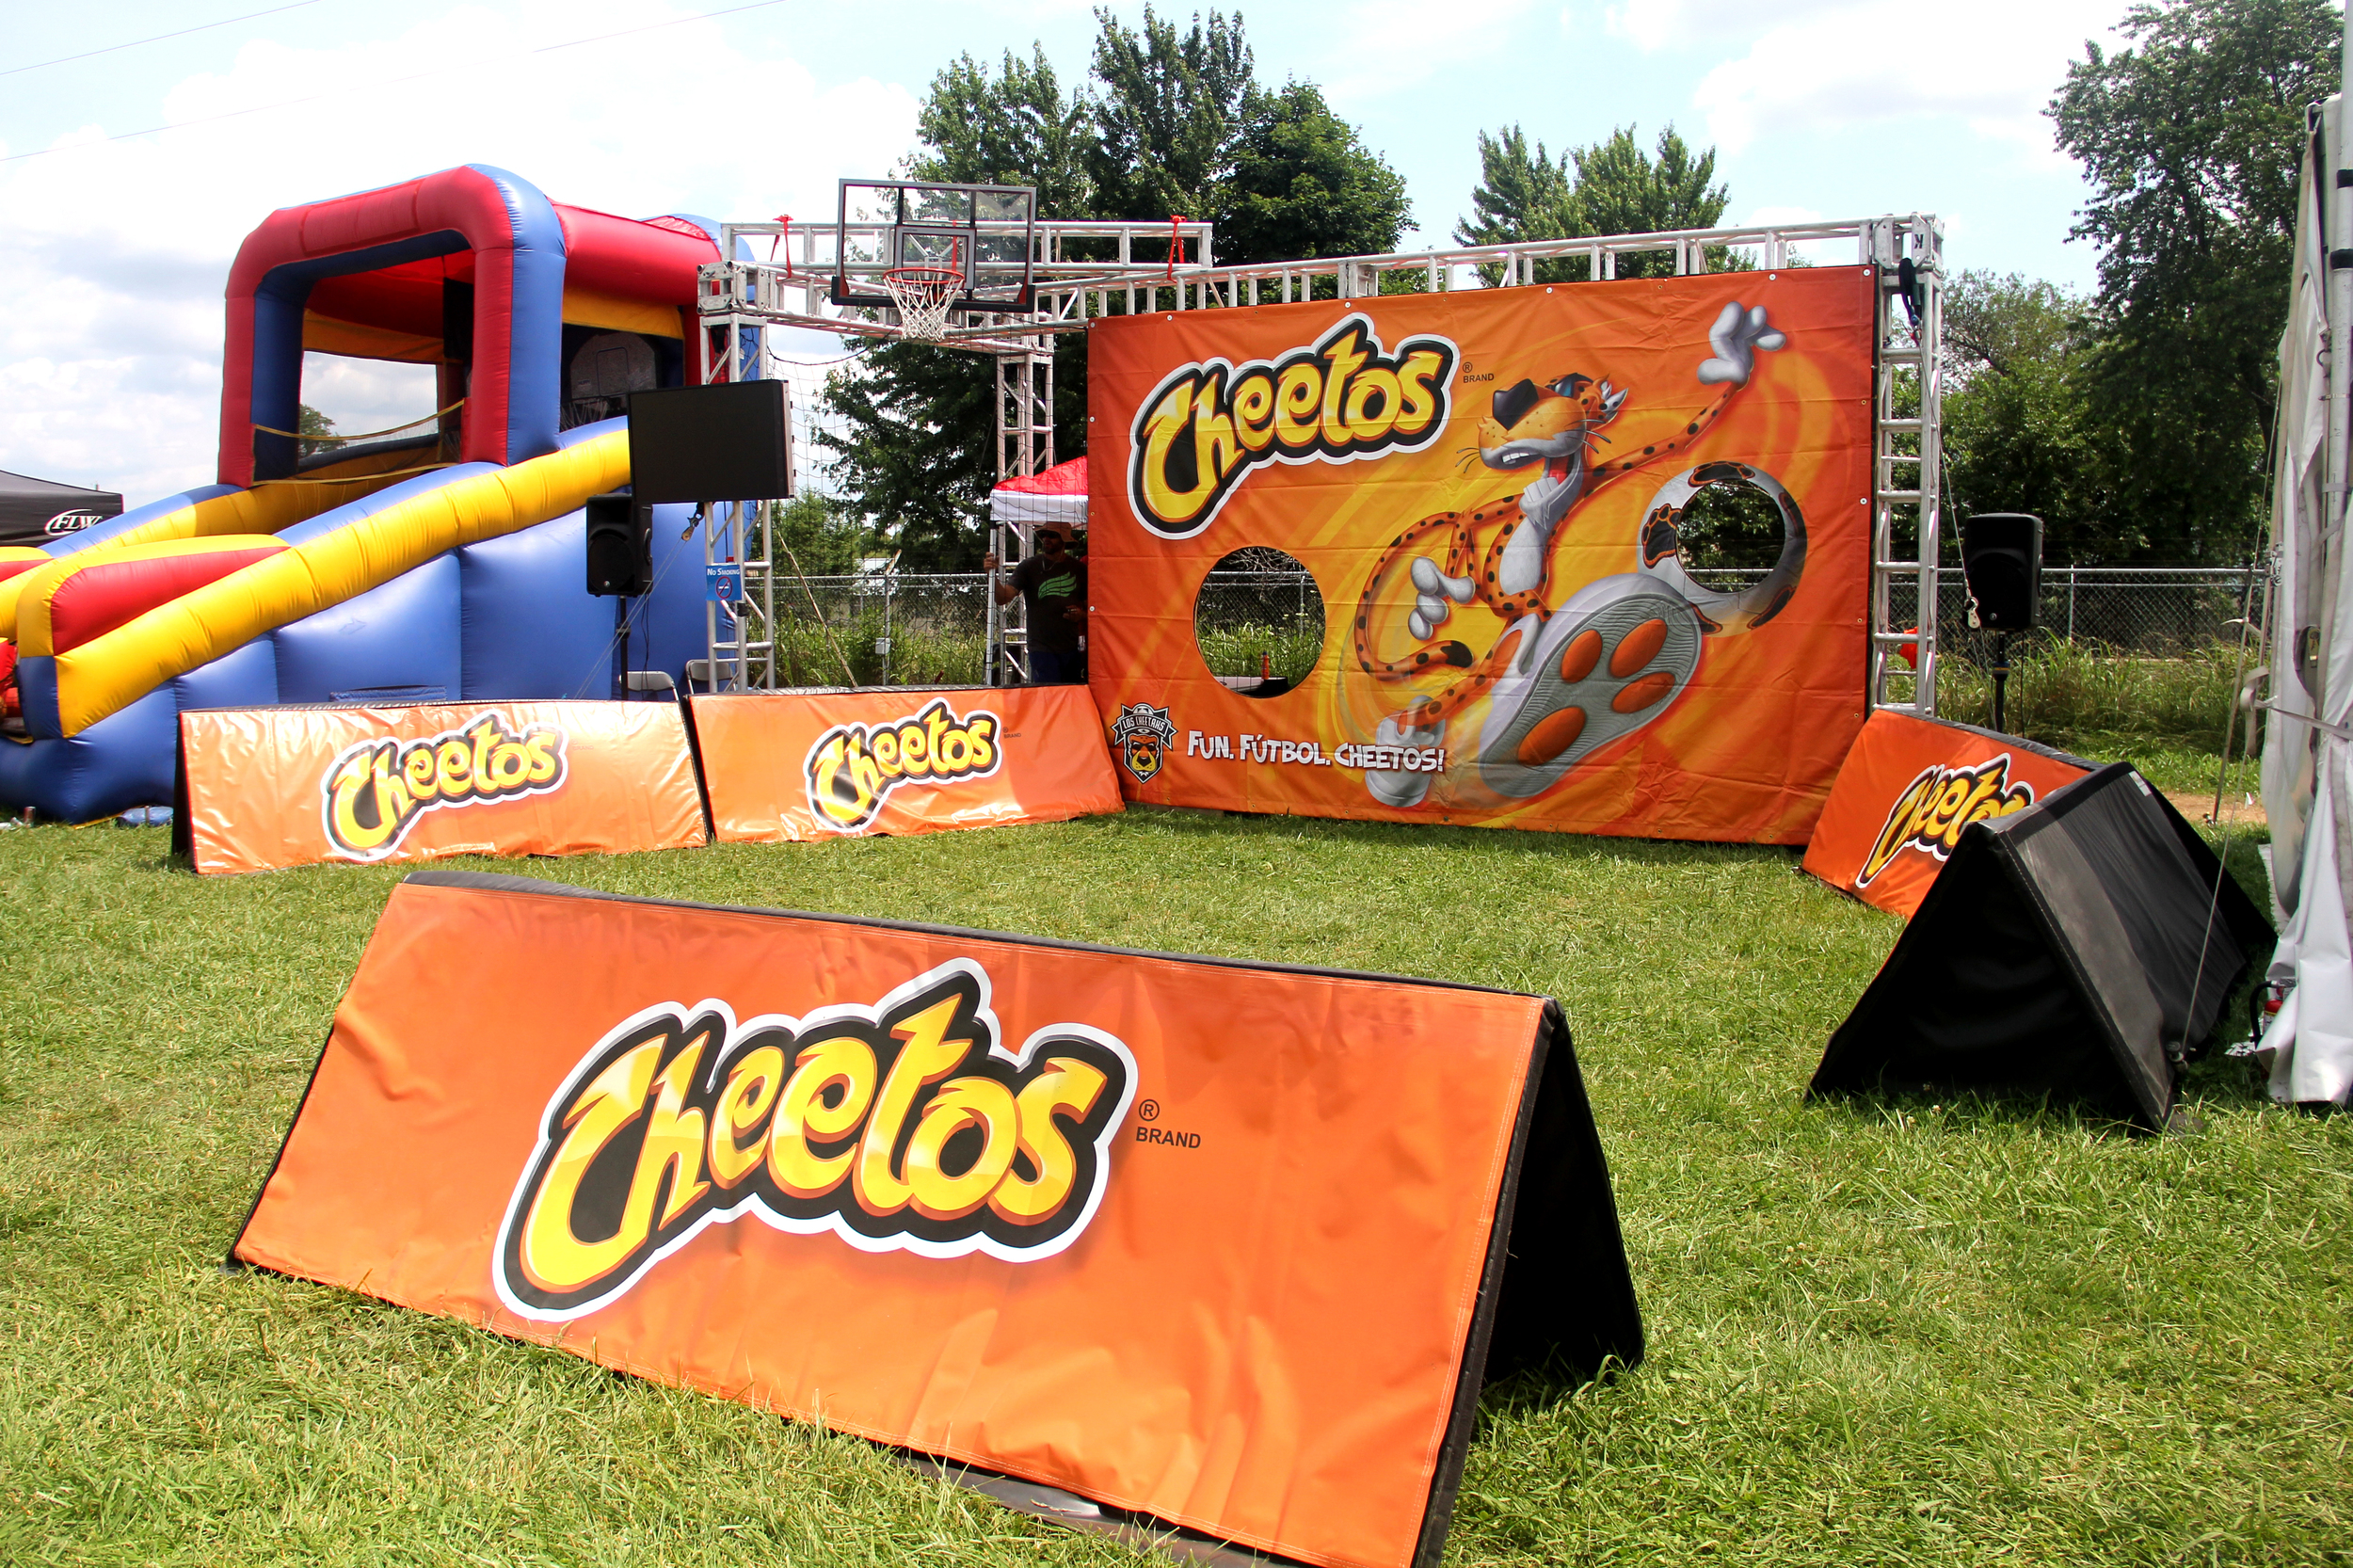 Cheetos Futbol/Soccer Associate Activity